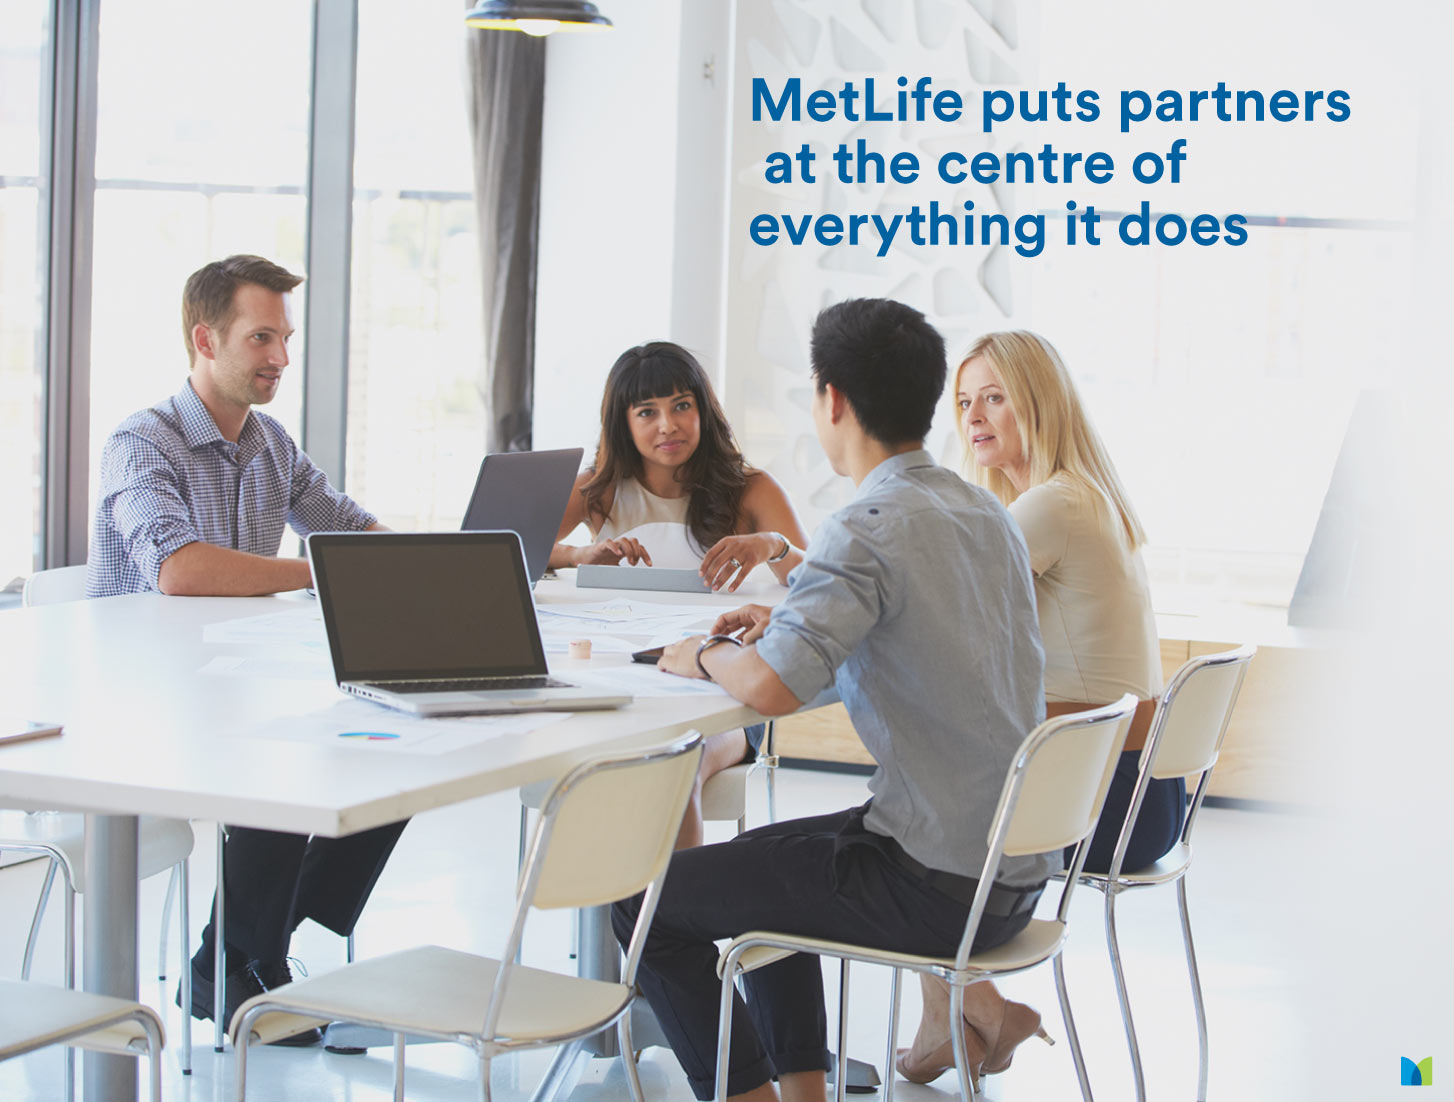 MetLife puts its partners at the centre of everything it does